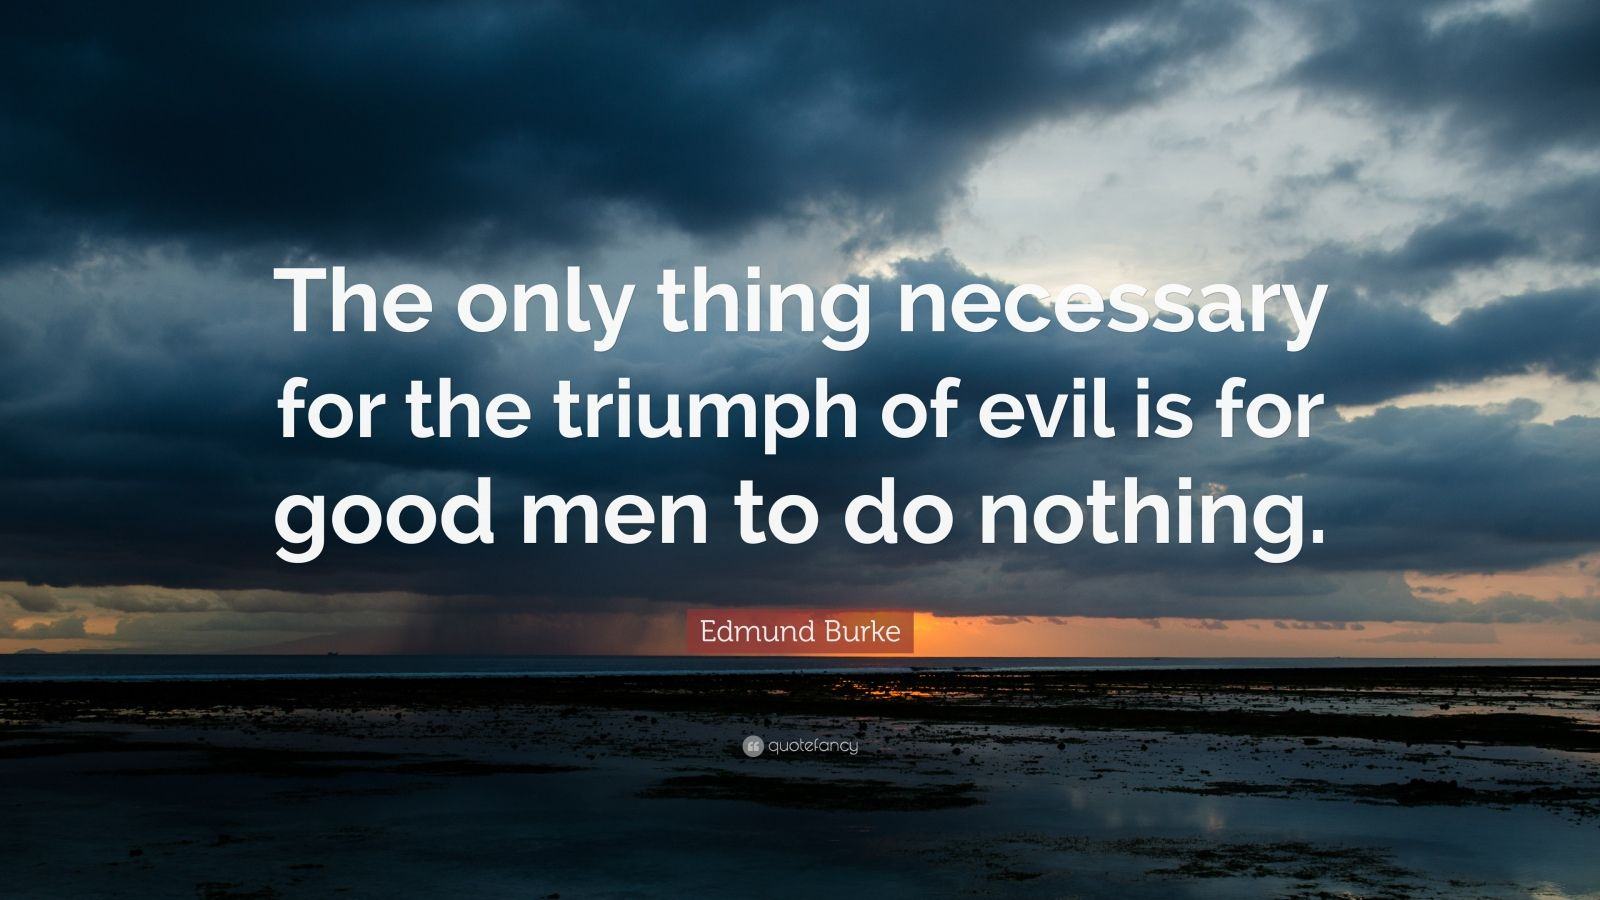 The Only Thing Necessary For The Triumph Of Evil Is For Good Men To Do Nothing 5